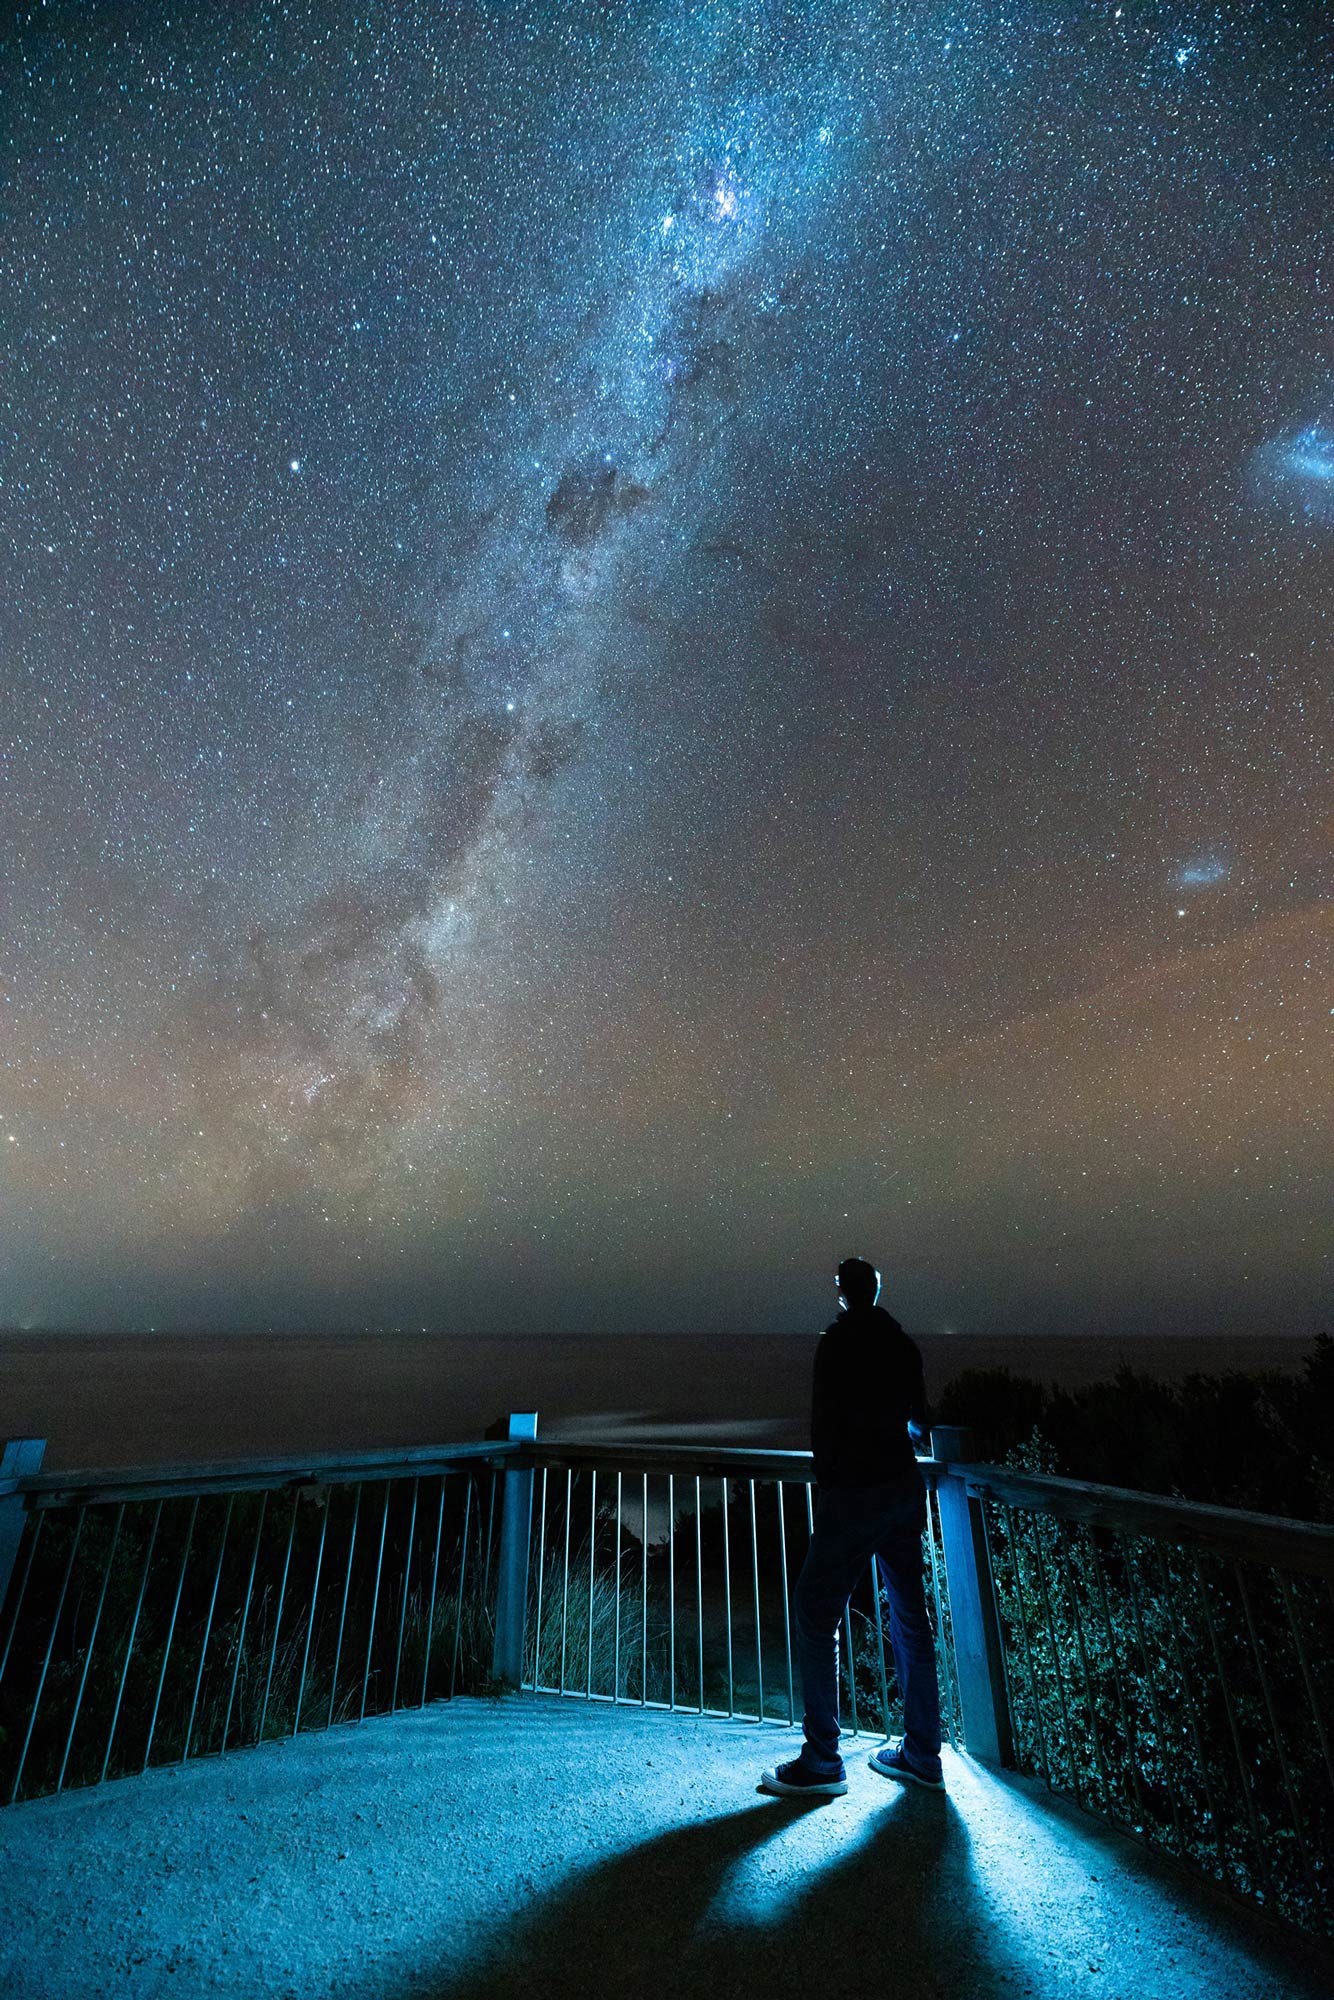 Man standing on balcony looking at stars.